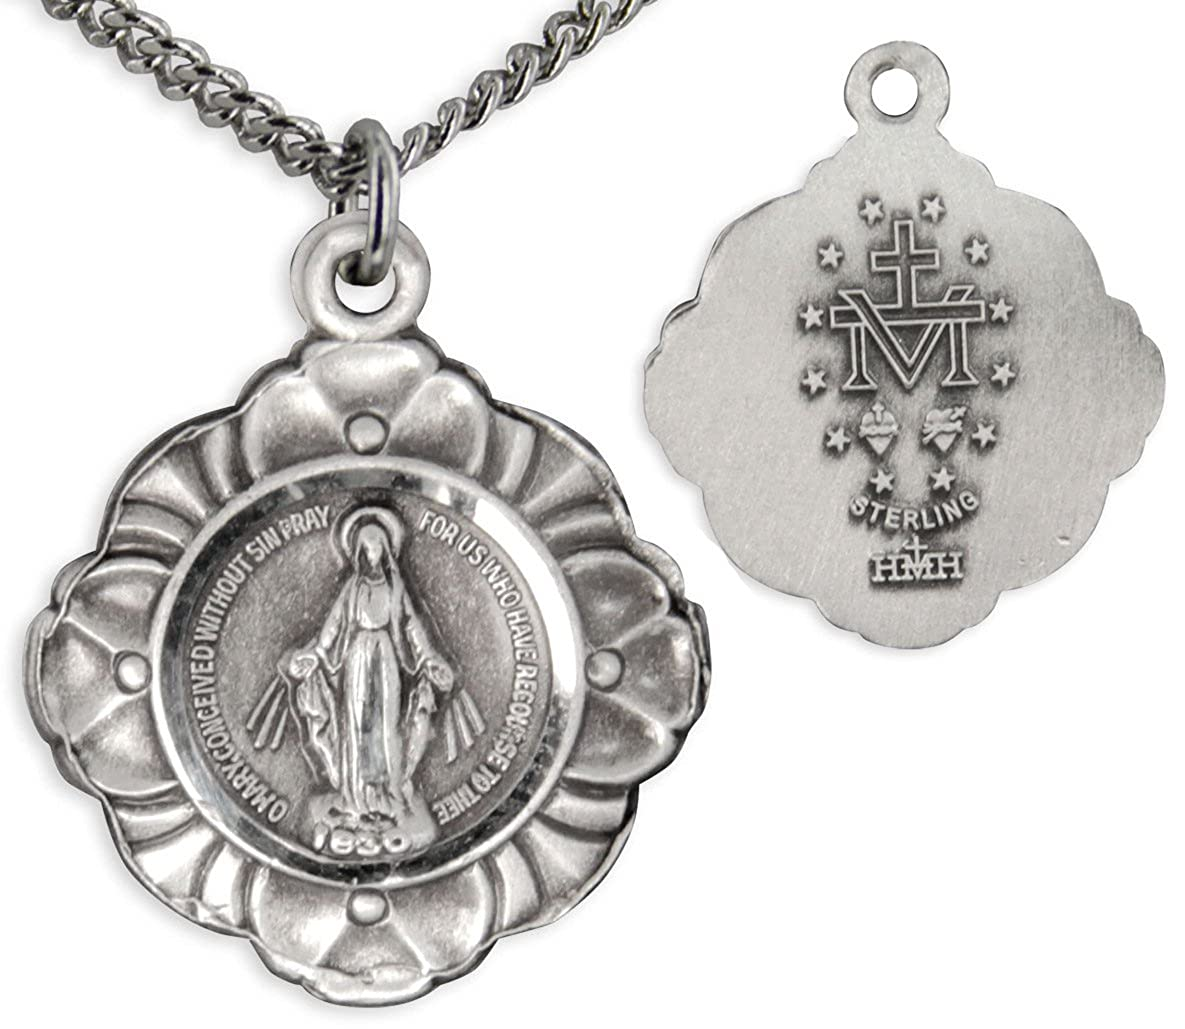 Heartland Womens Floral Edge Miraculous Medal Necklace USA Made Chain Choice